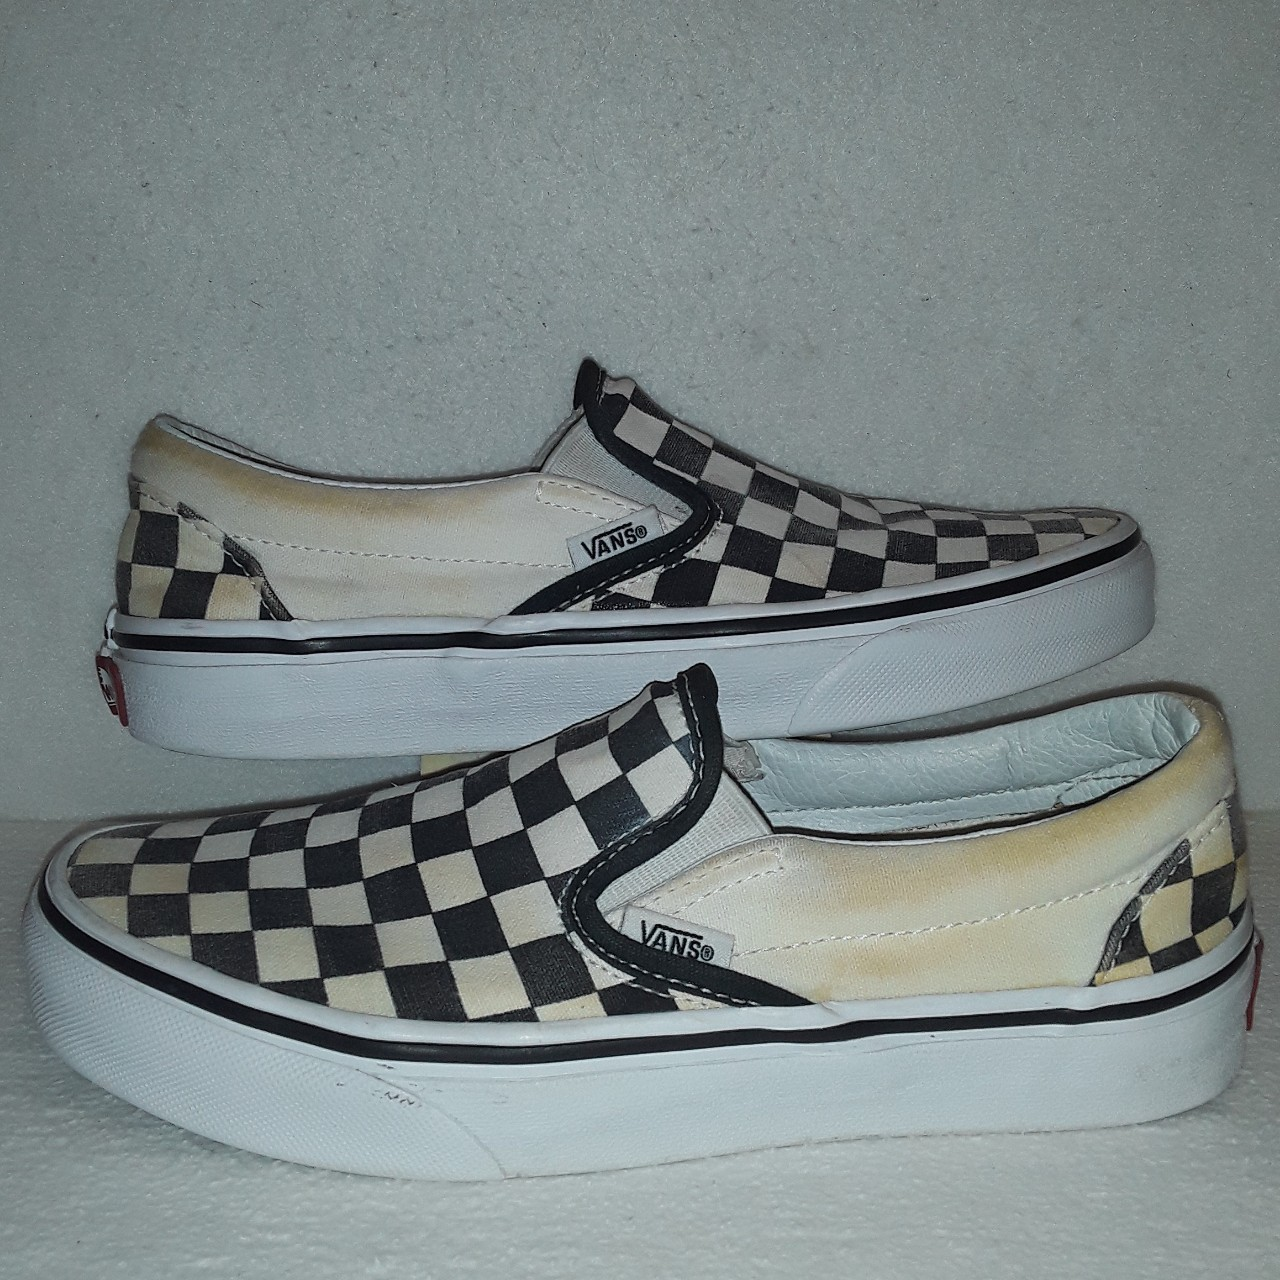 Product Image 1 - Vans Classic Slip On Checkerboard